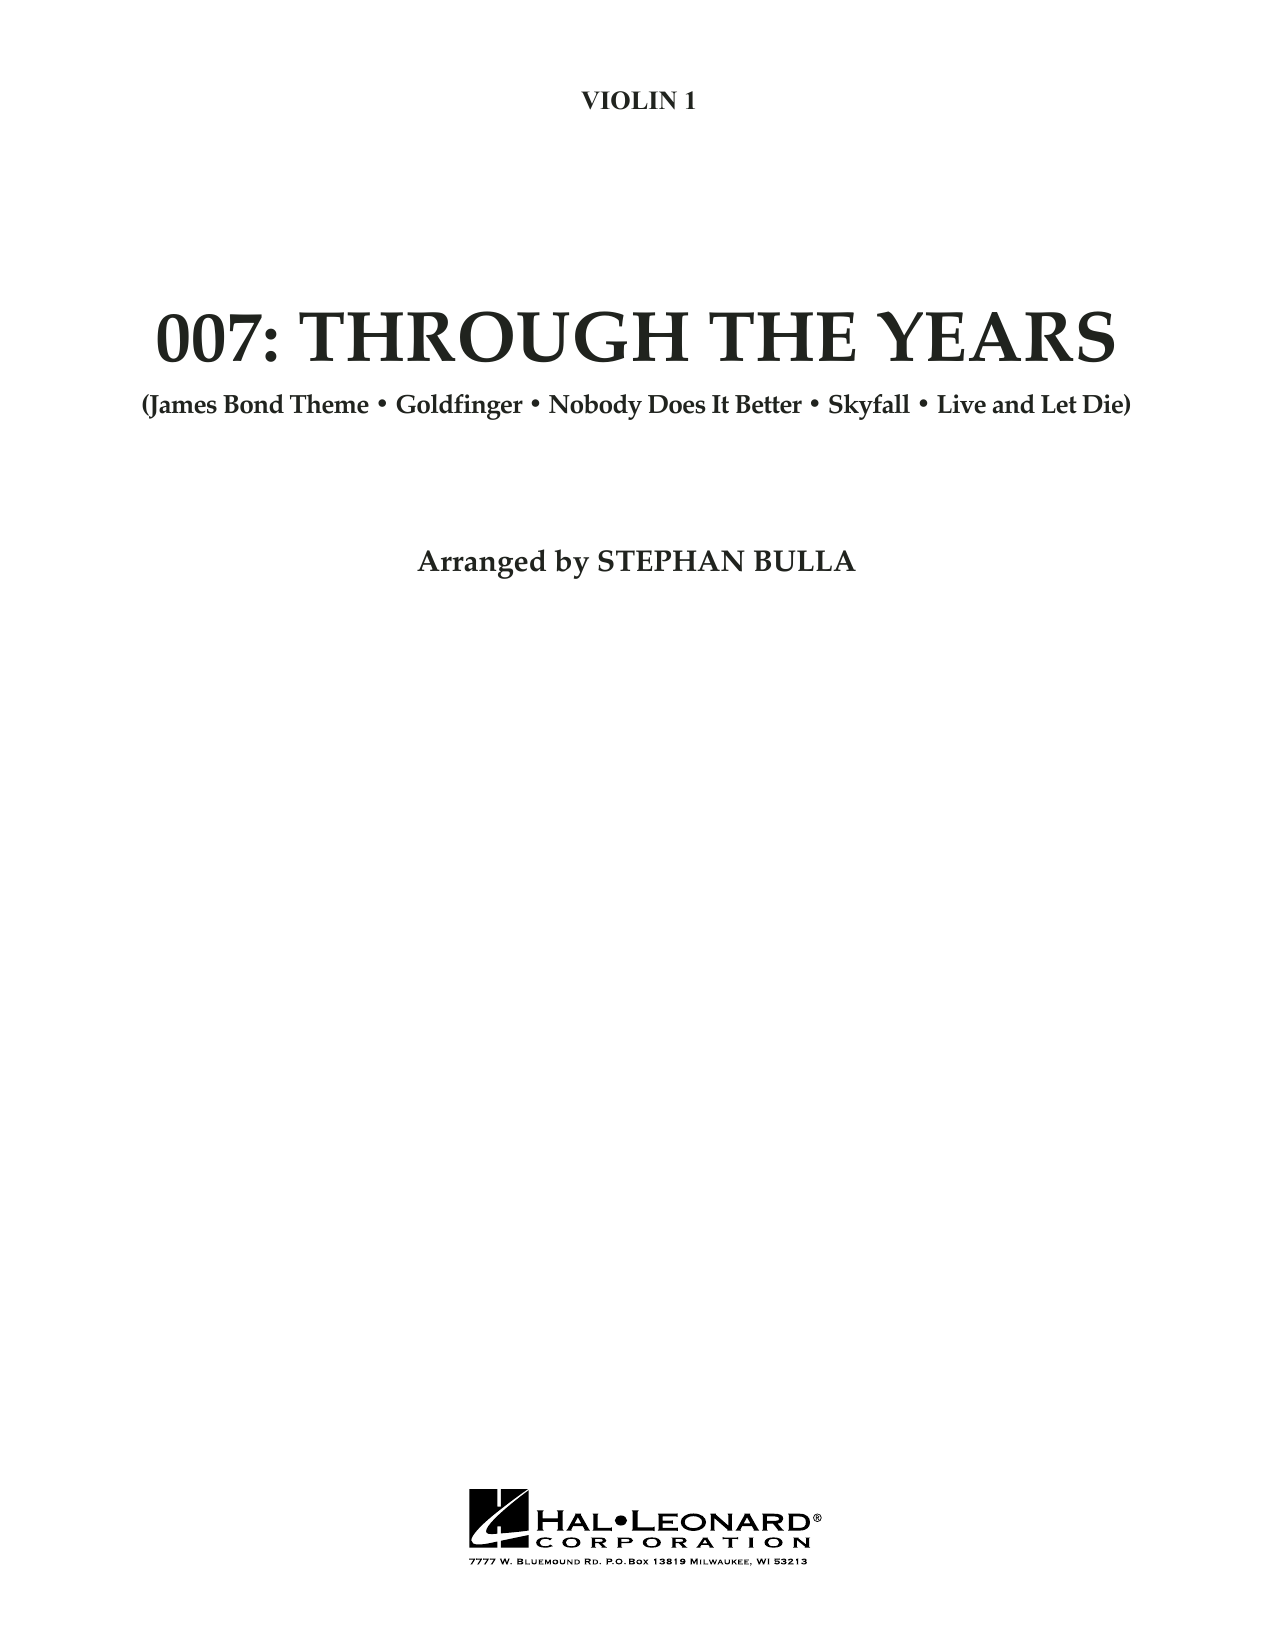 007: Through The Years - Violin 1 (Orchestra)